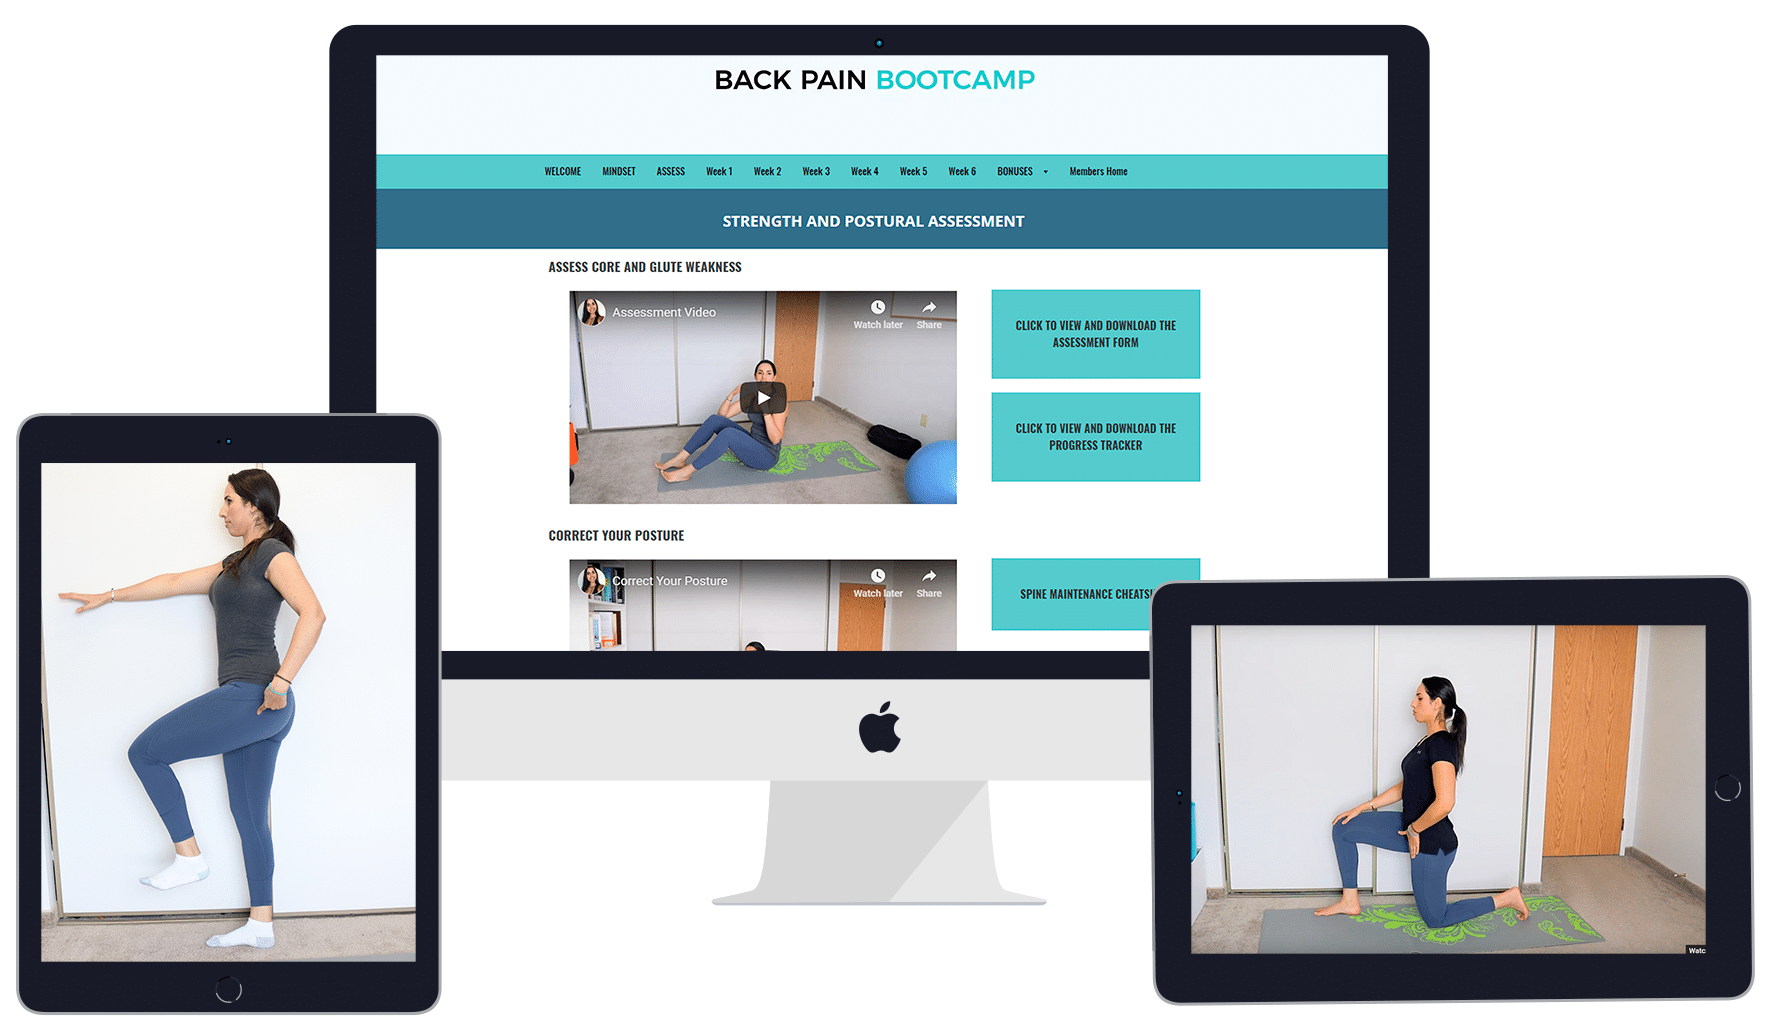 Back Pain Bootcamp